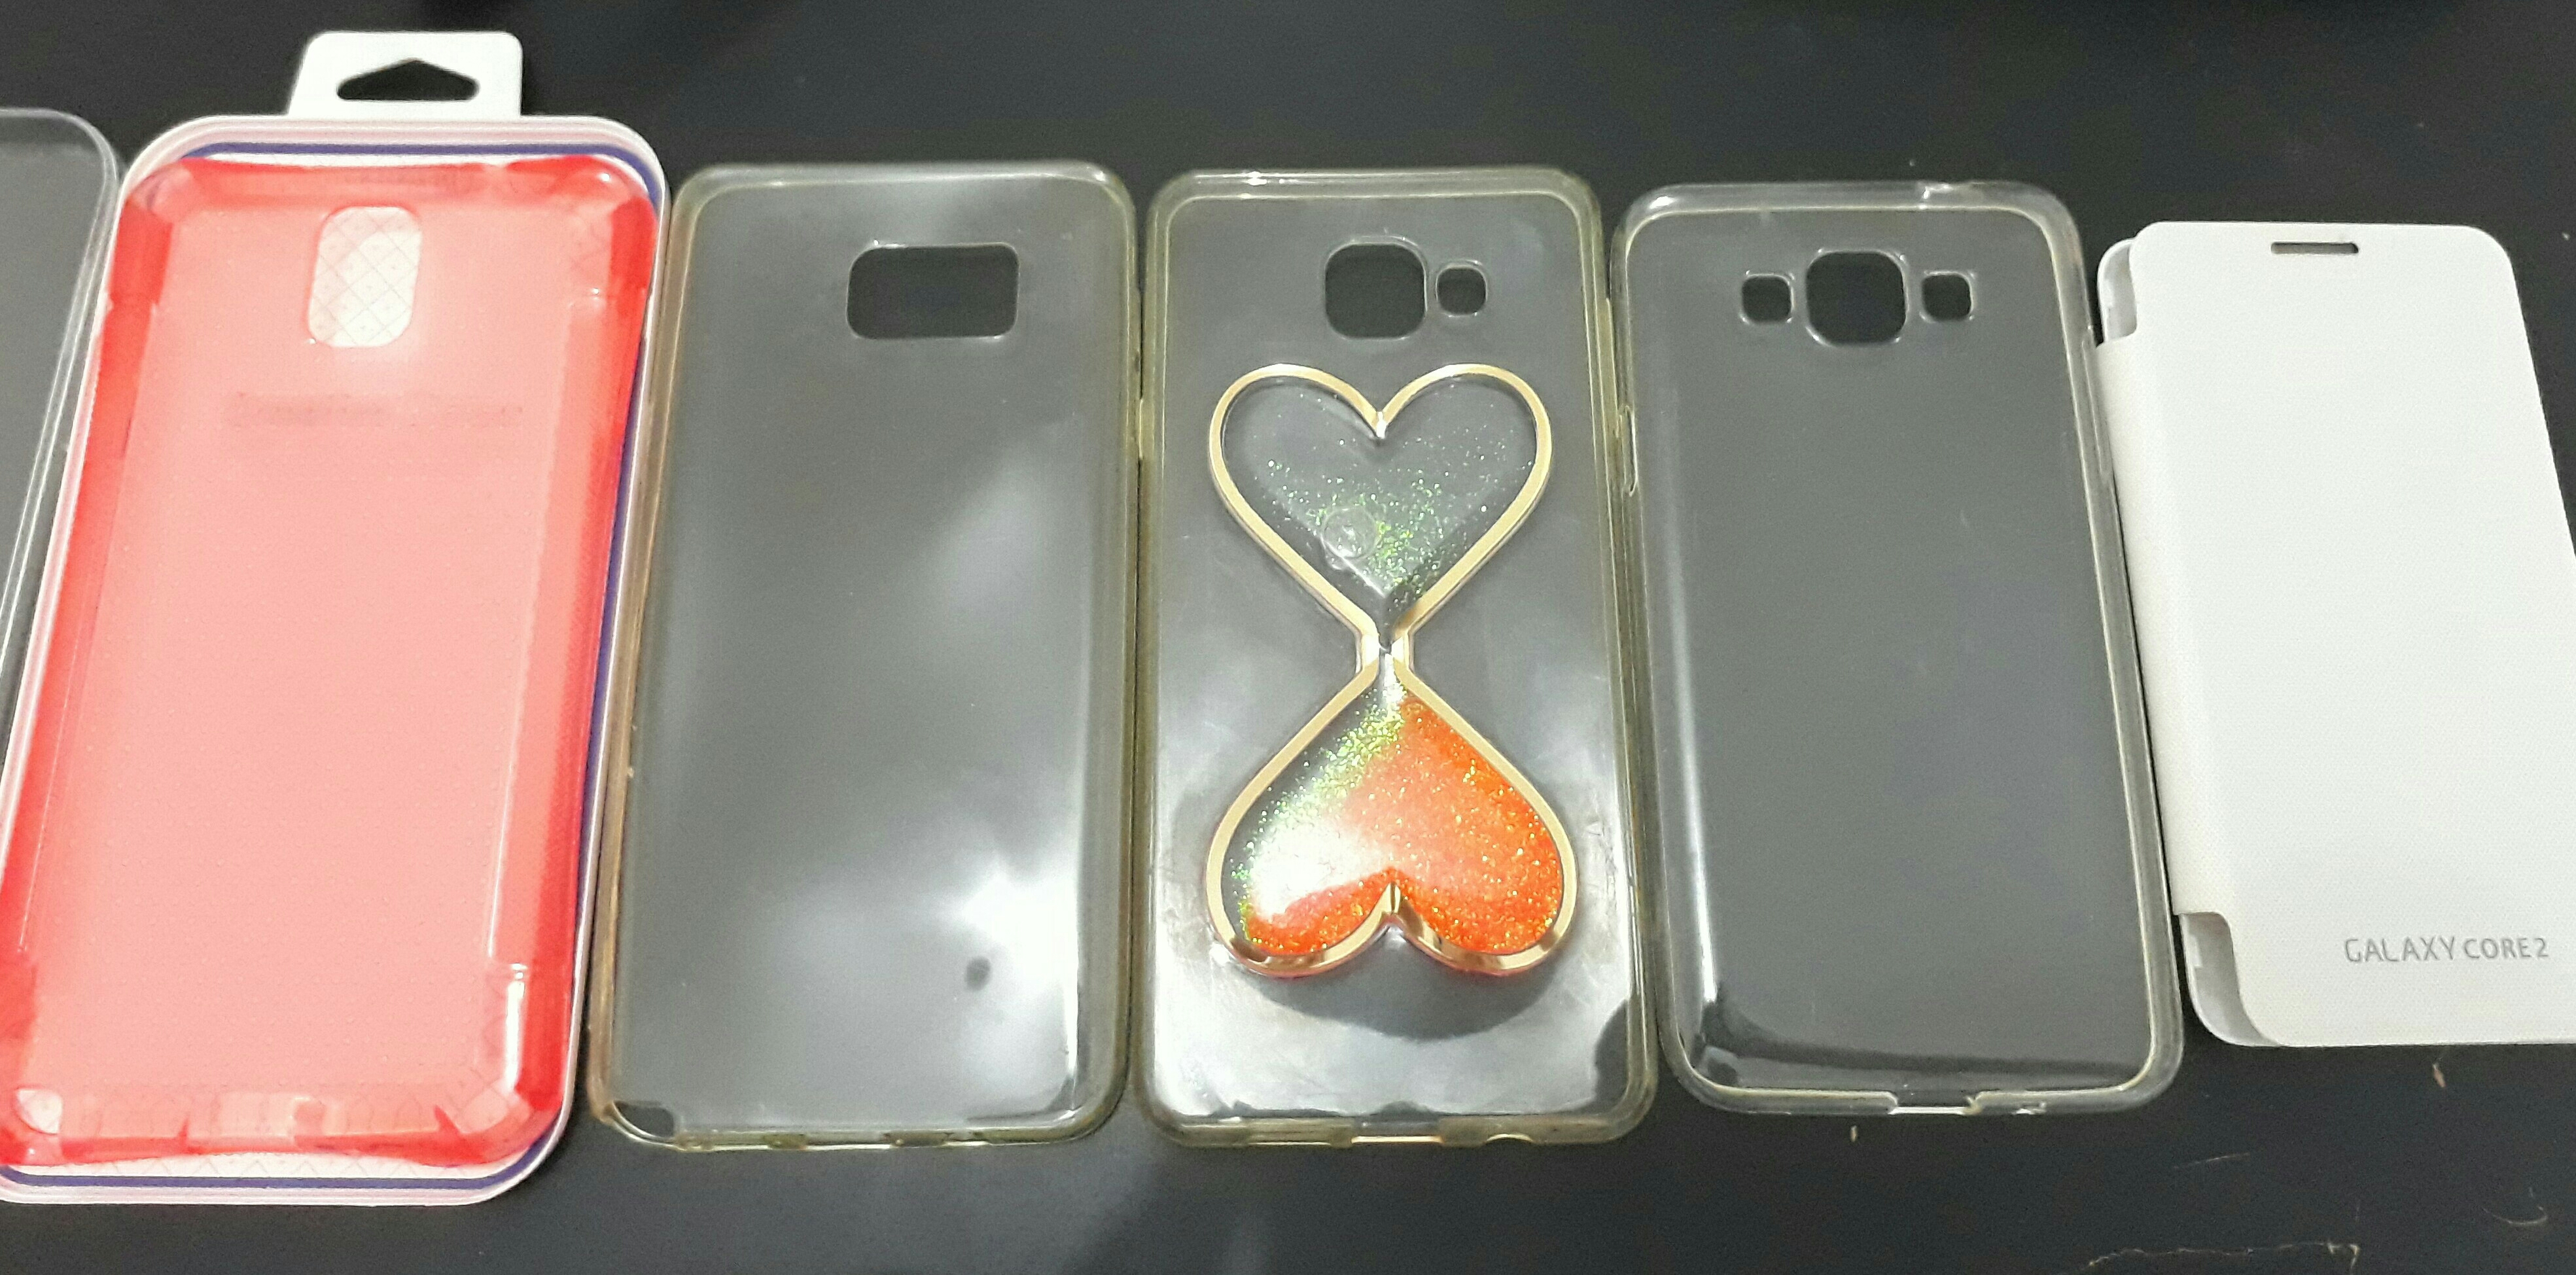 Mobile Covers A7 (6)/galaxy Core2 and So On Check My Profile.